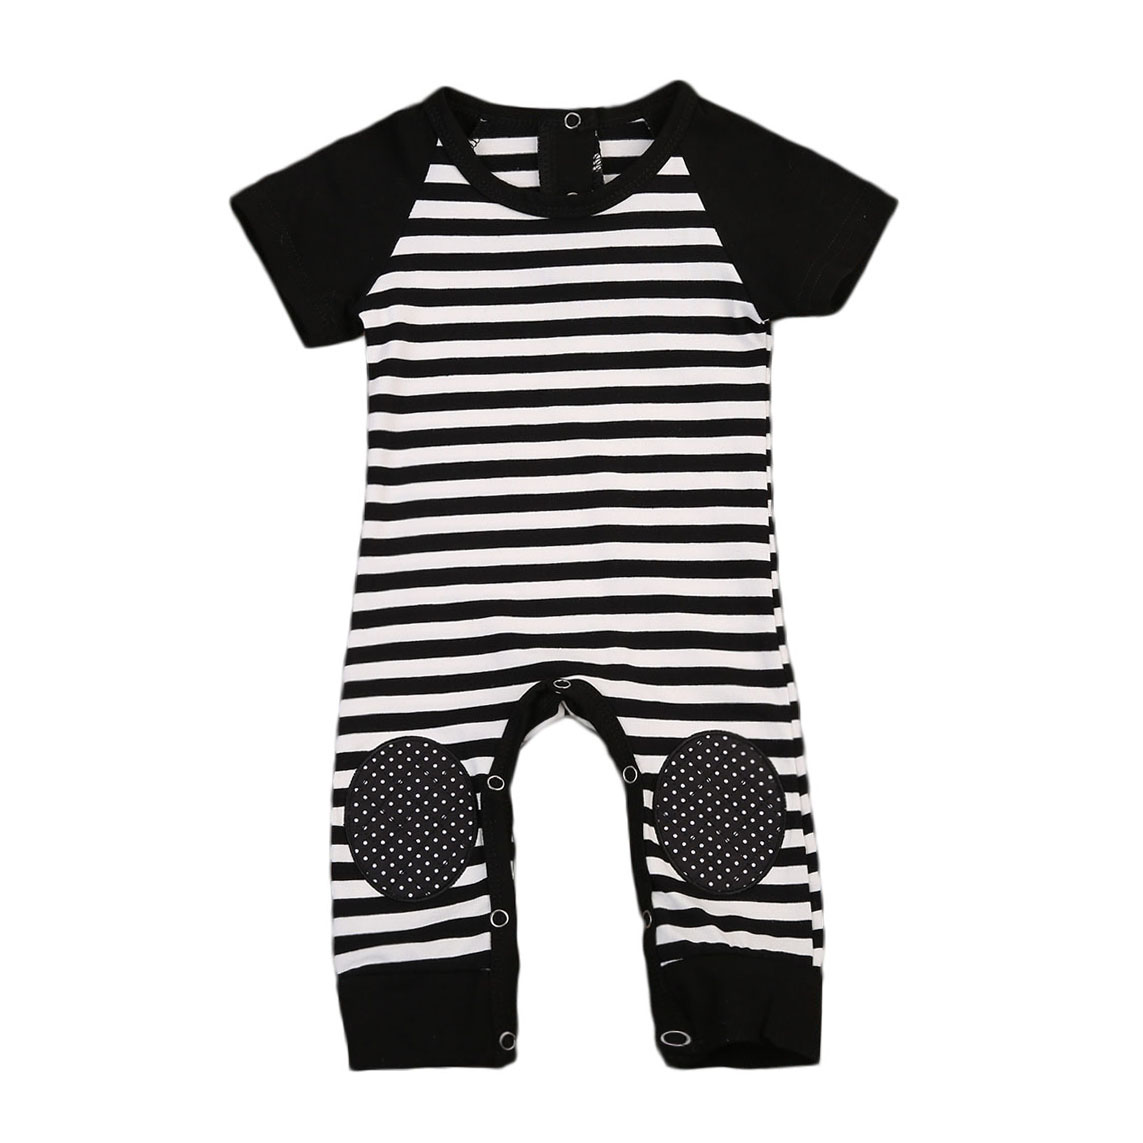 Newborn Infant Baby Boys Girls Romper Jumpsuit Warm Clothes Outfits Toddler Boy Girl Rompers Striped Cotton Soft Casual Brief cute black jumpsuits outfits clothing baby kid boy girl wings newborn toddler child infant kids boys girls clothes romper 0 18m